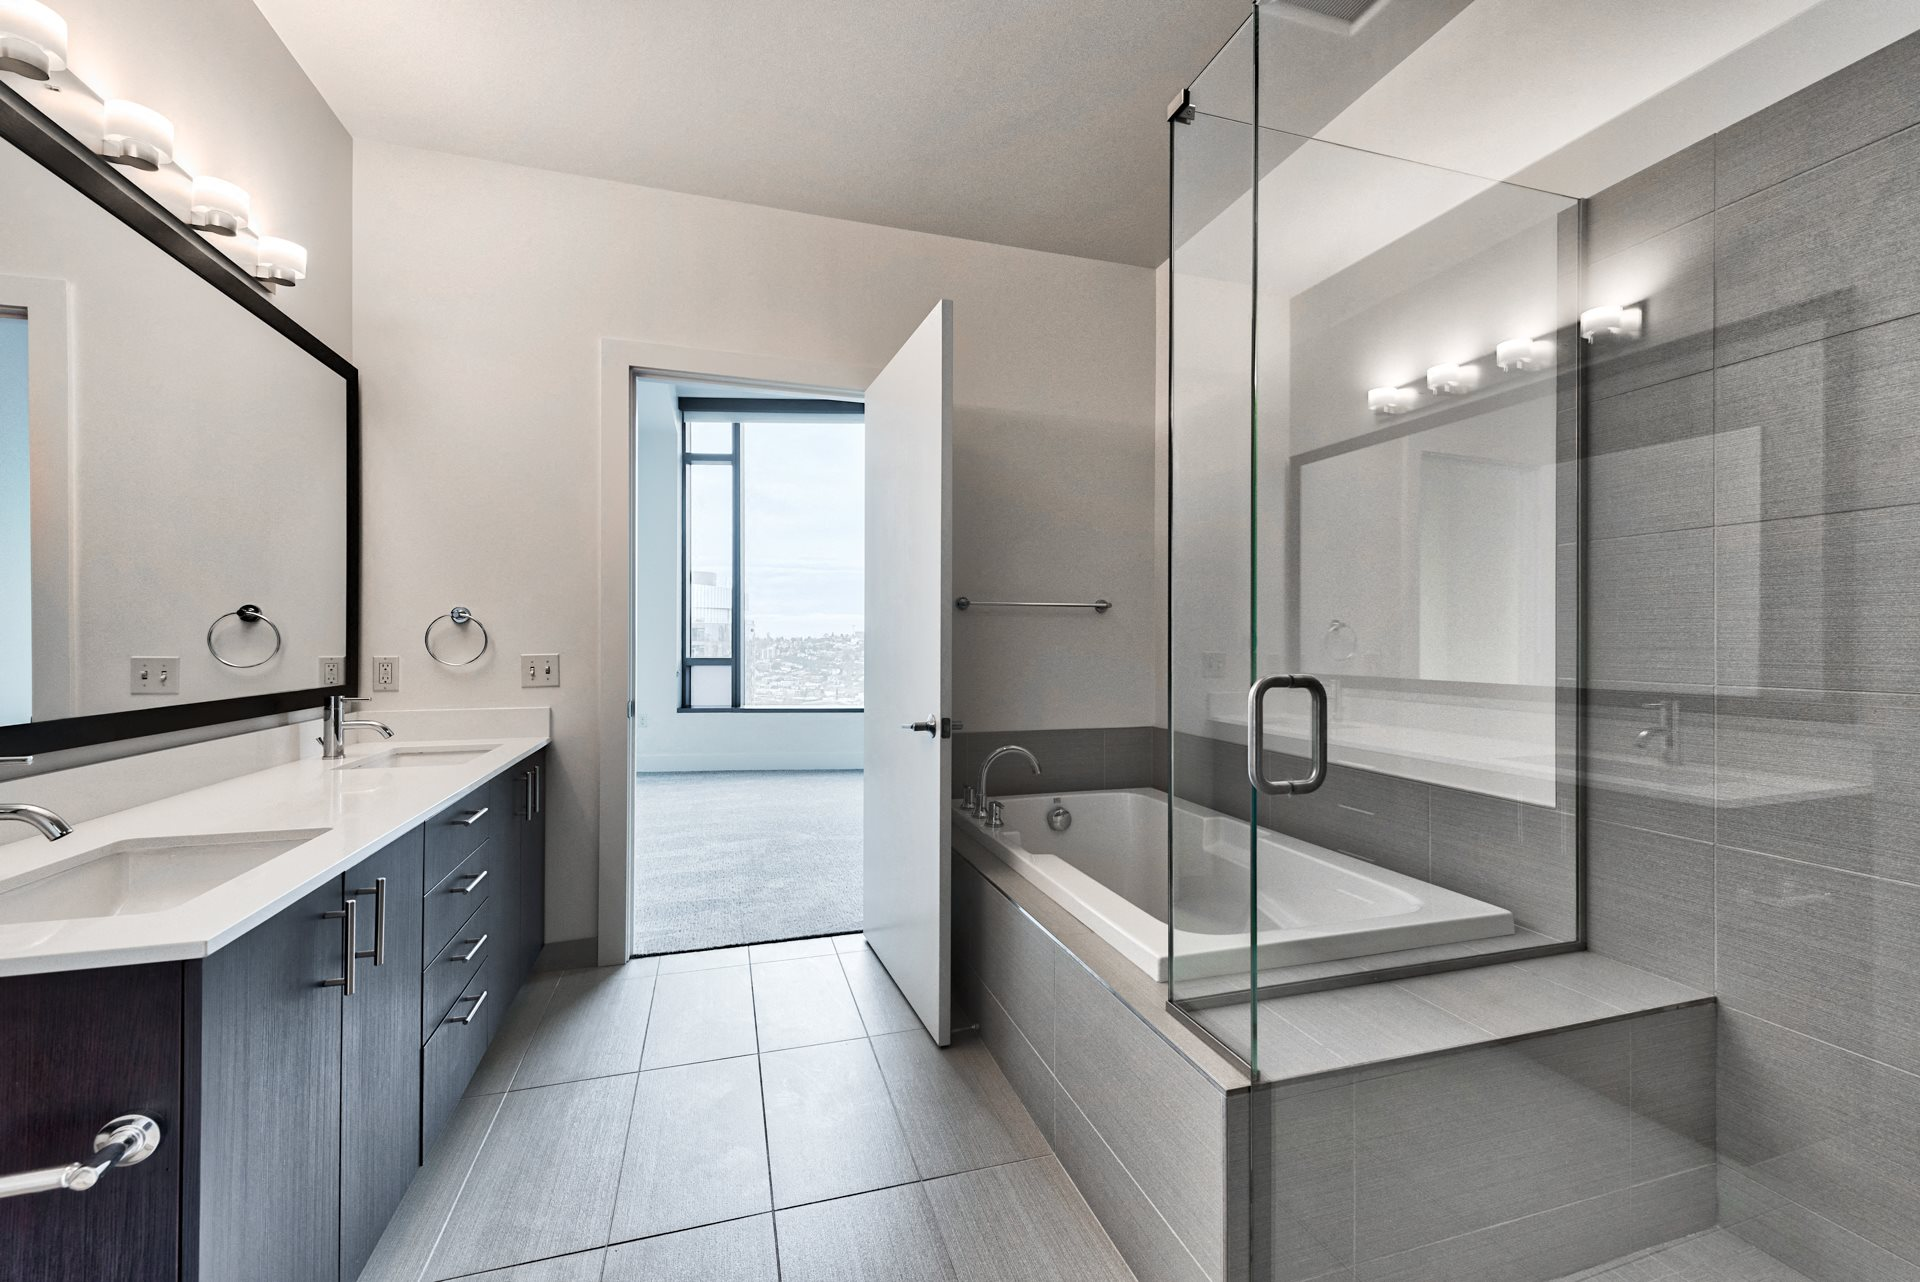 Spa inspired bathroom with glass shower, soaking tub and dual vanity at Cirrus, Seattle, Washington.